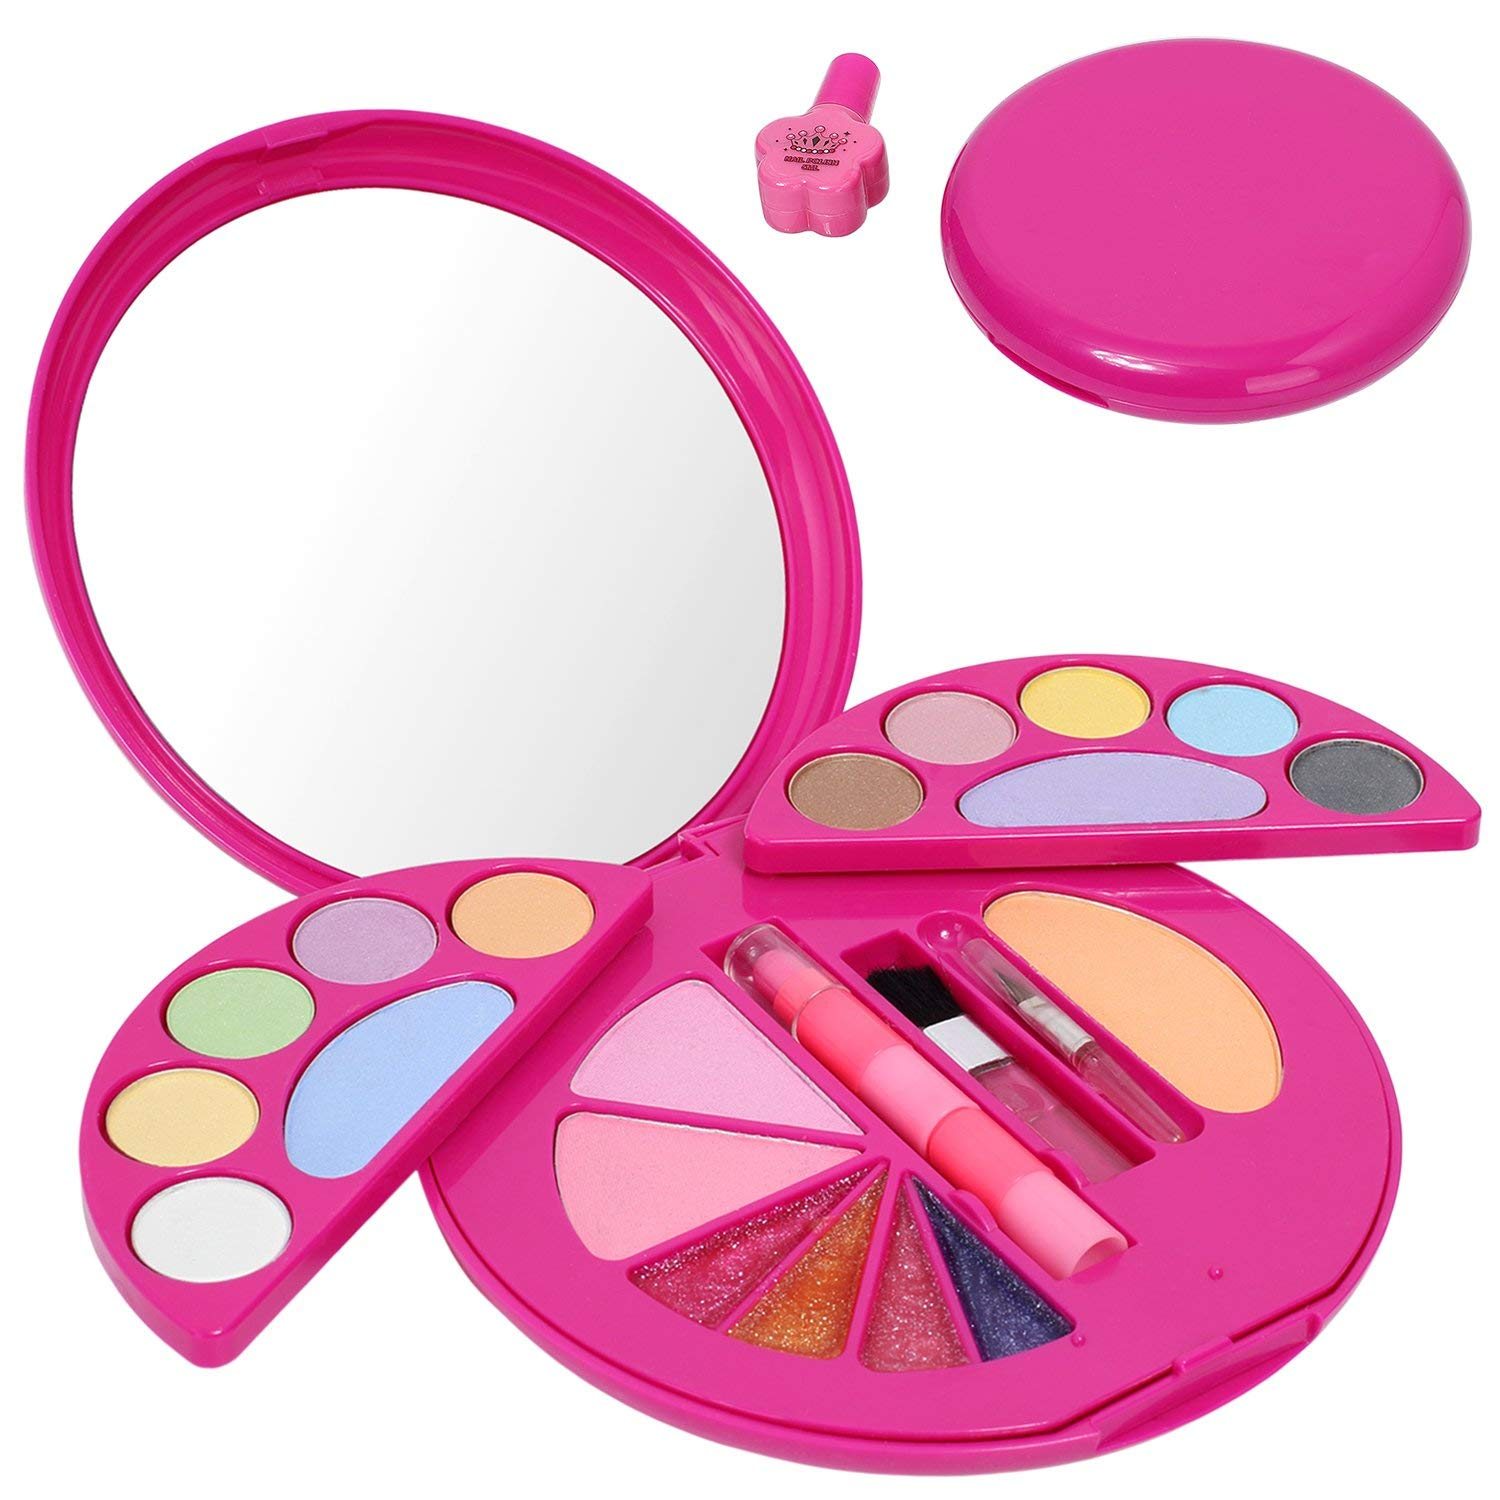 make-up-kit-for-young-girls